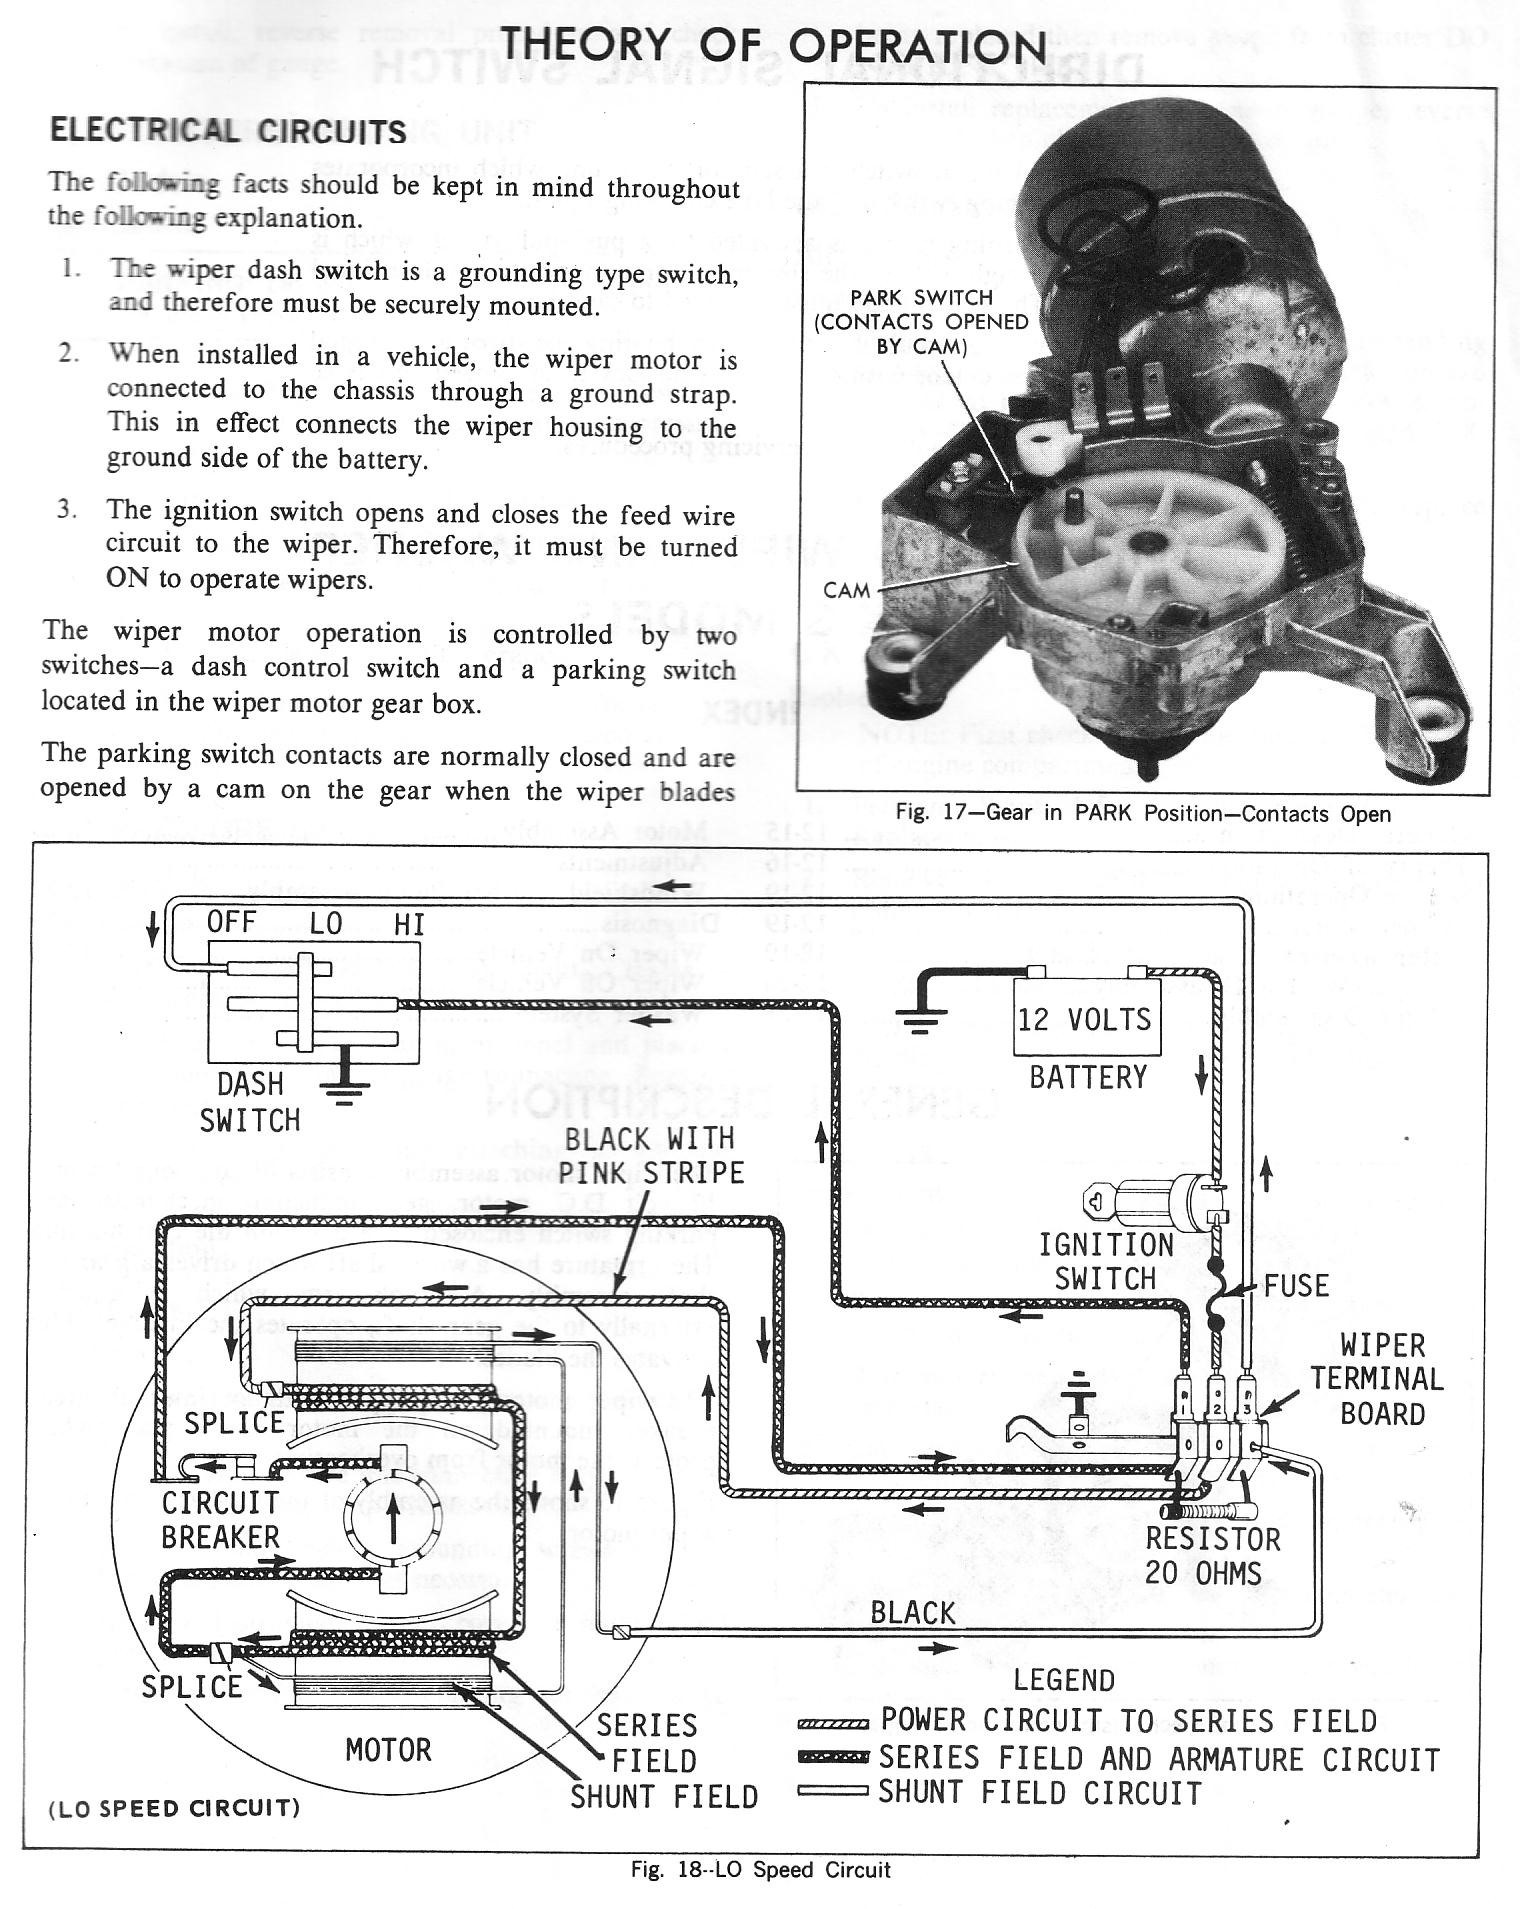 hight resolution of 1957 chevy wiper motor wiring diagram residential electrical symbols u2022 77 corvette windshield wiper wiring